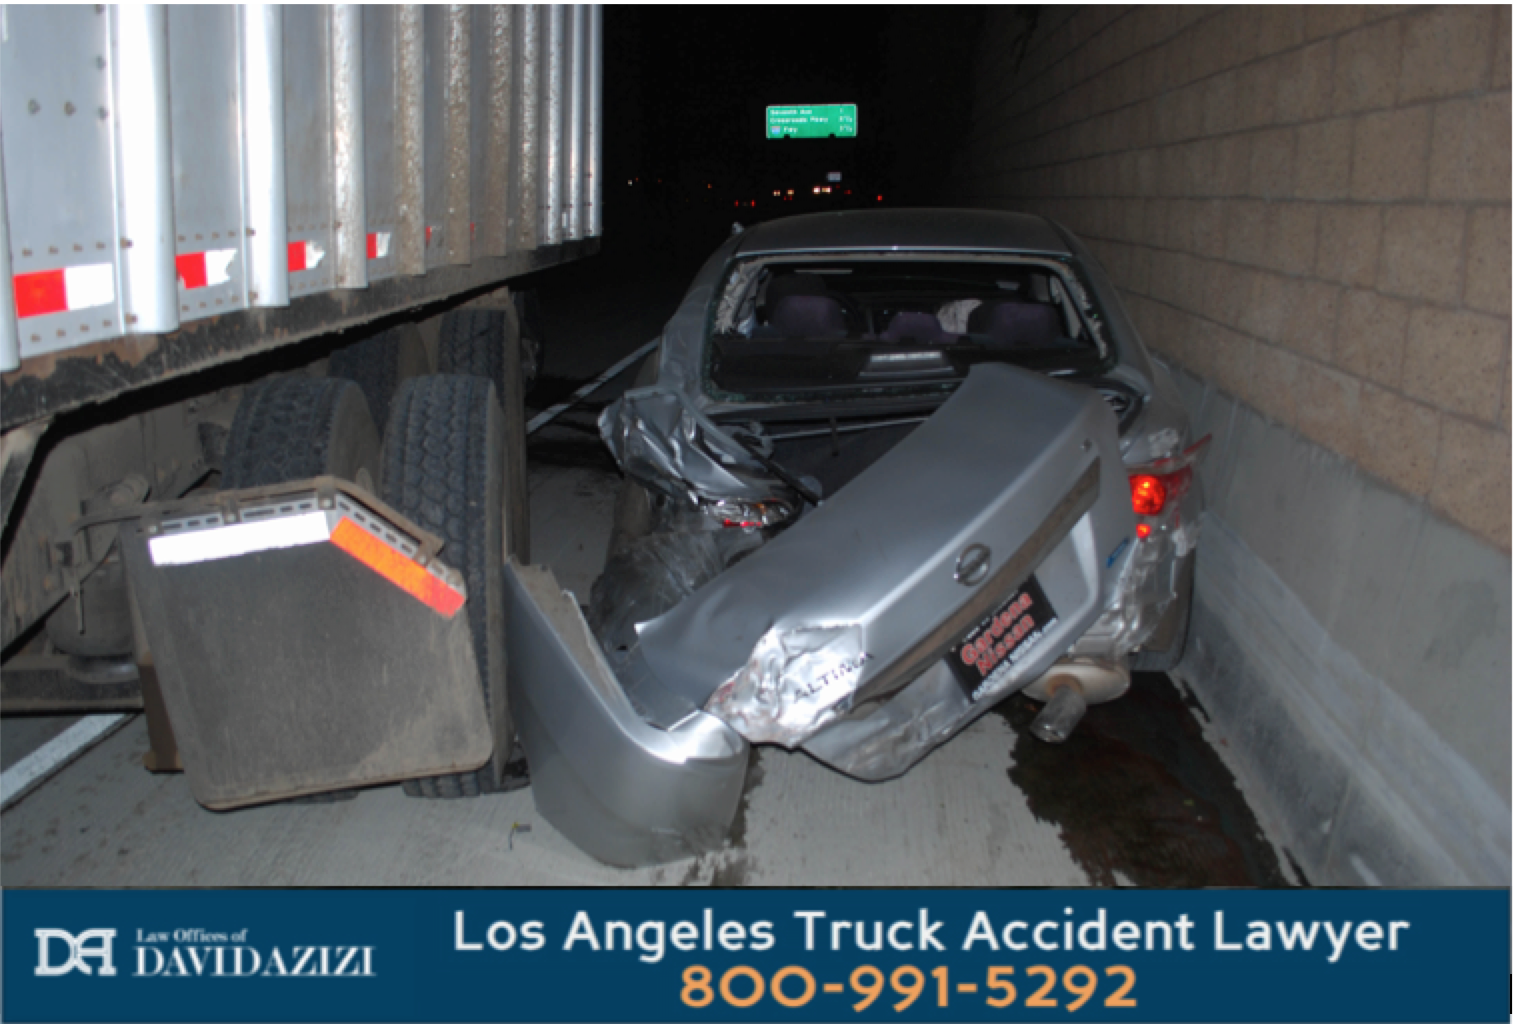 Truck Crash Vehicle Pinned - David Azizi